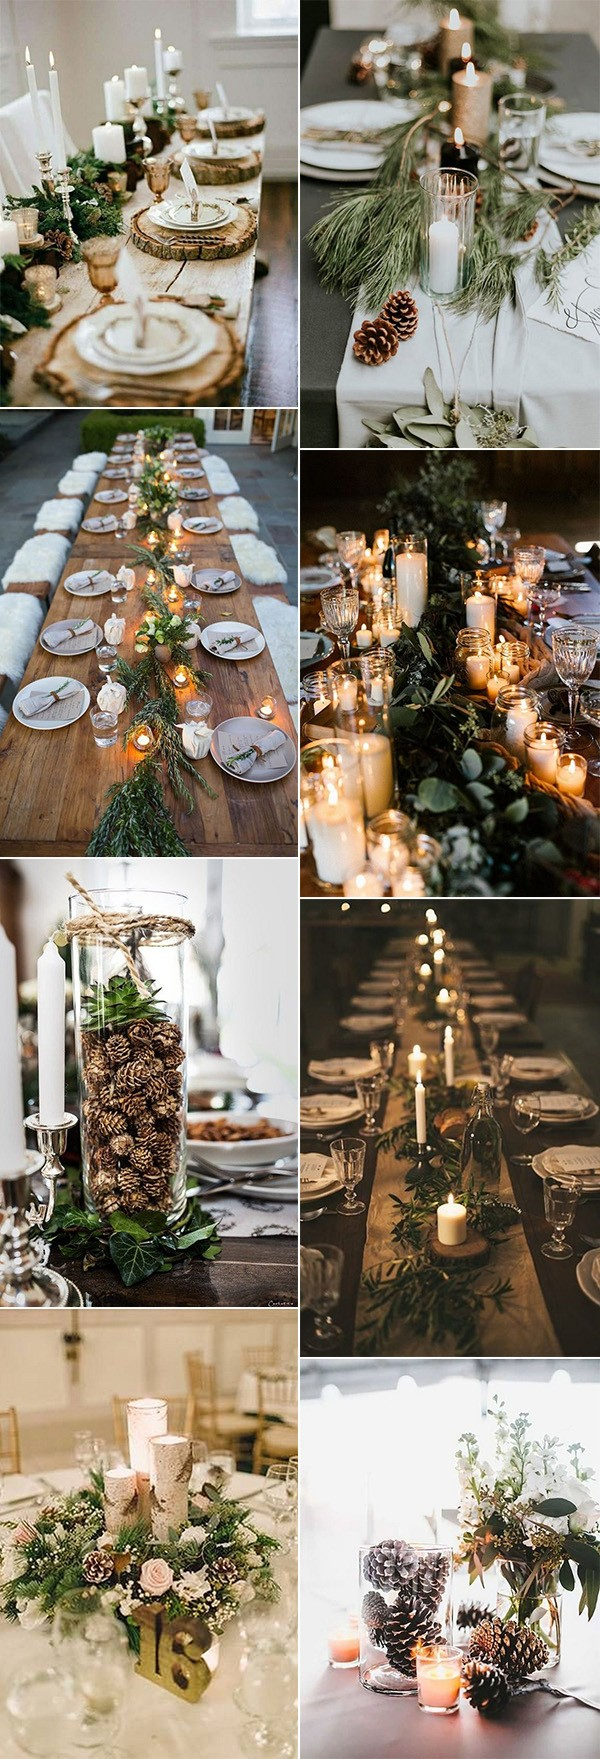 chic rustic winter wedding centerpieces for 2018